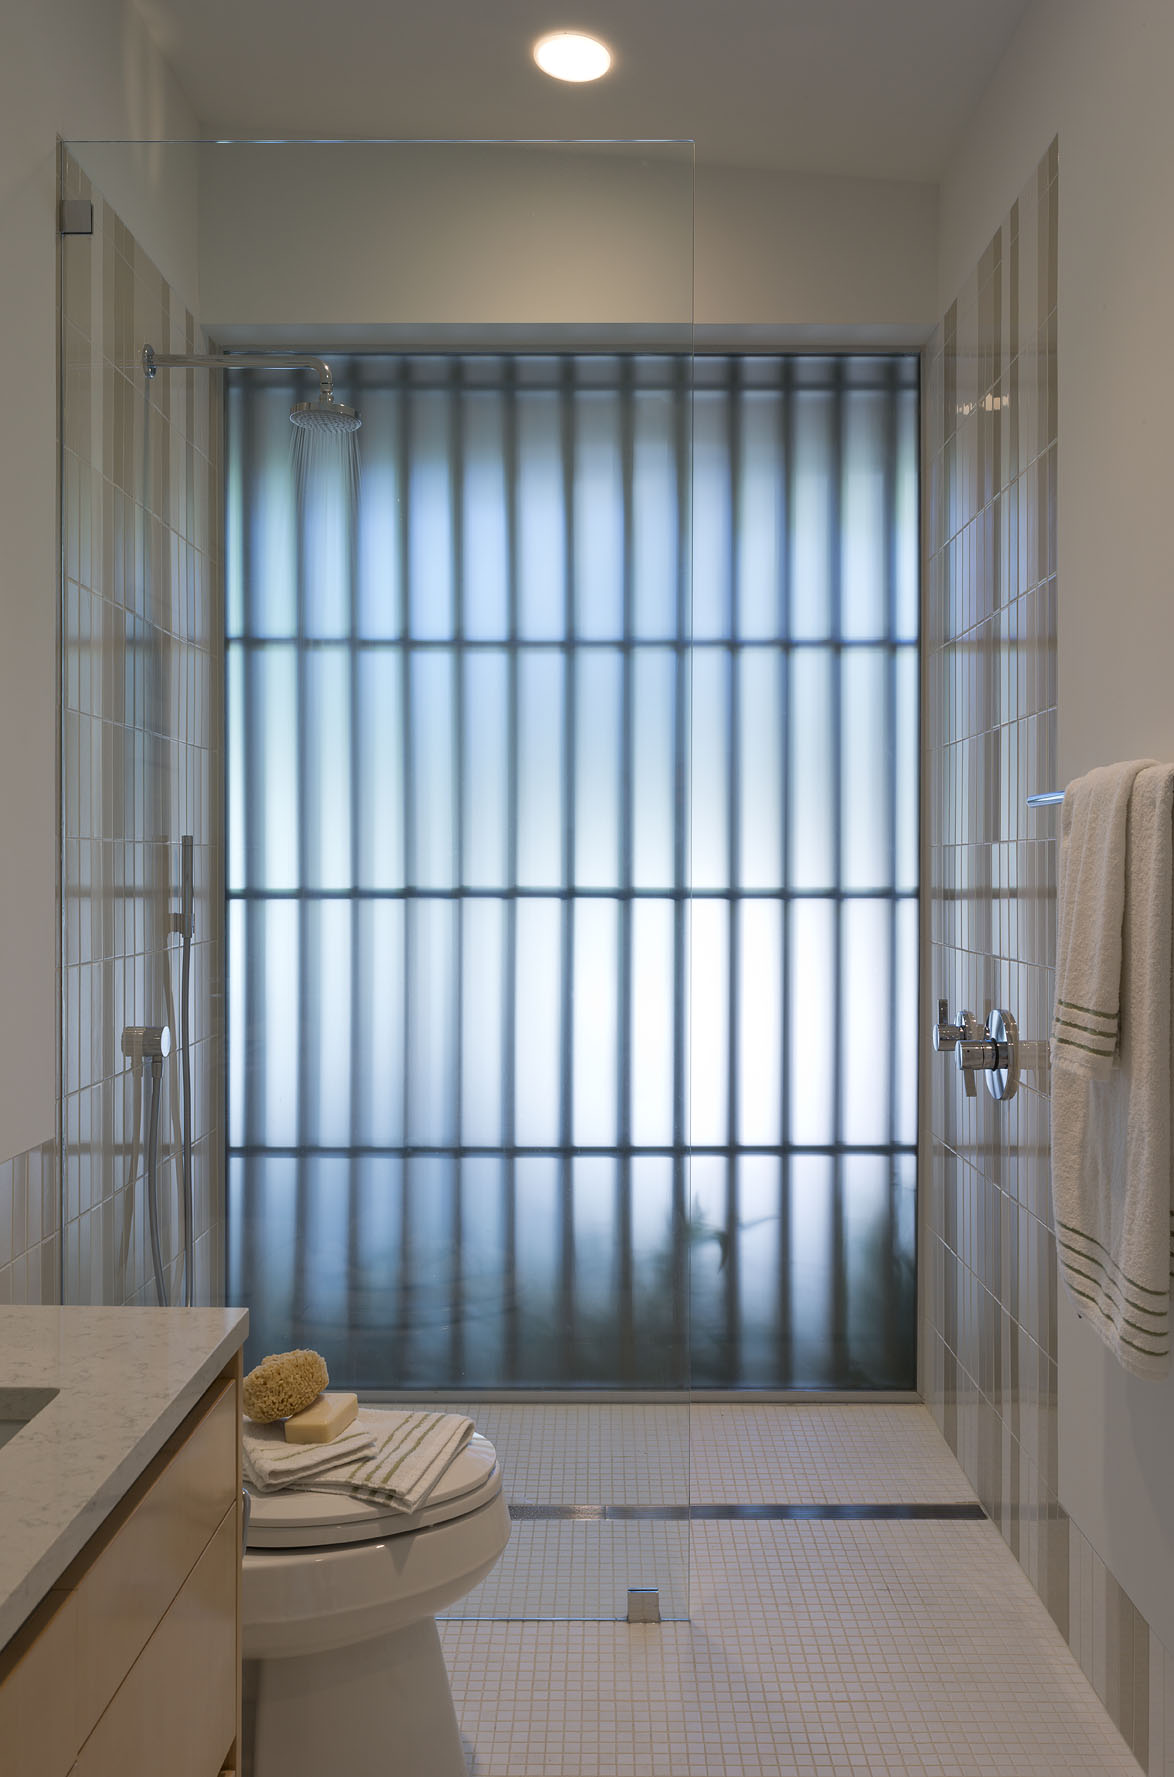 Frosted glass wall with Douglas fir privacy screen frame this guest shower.